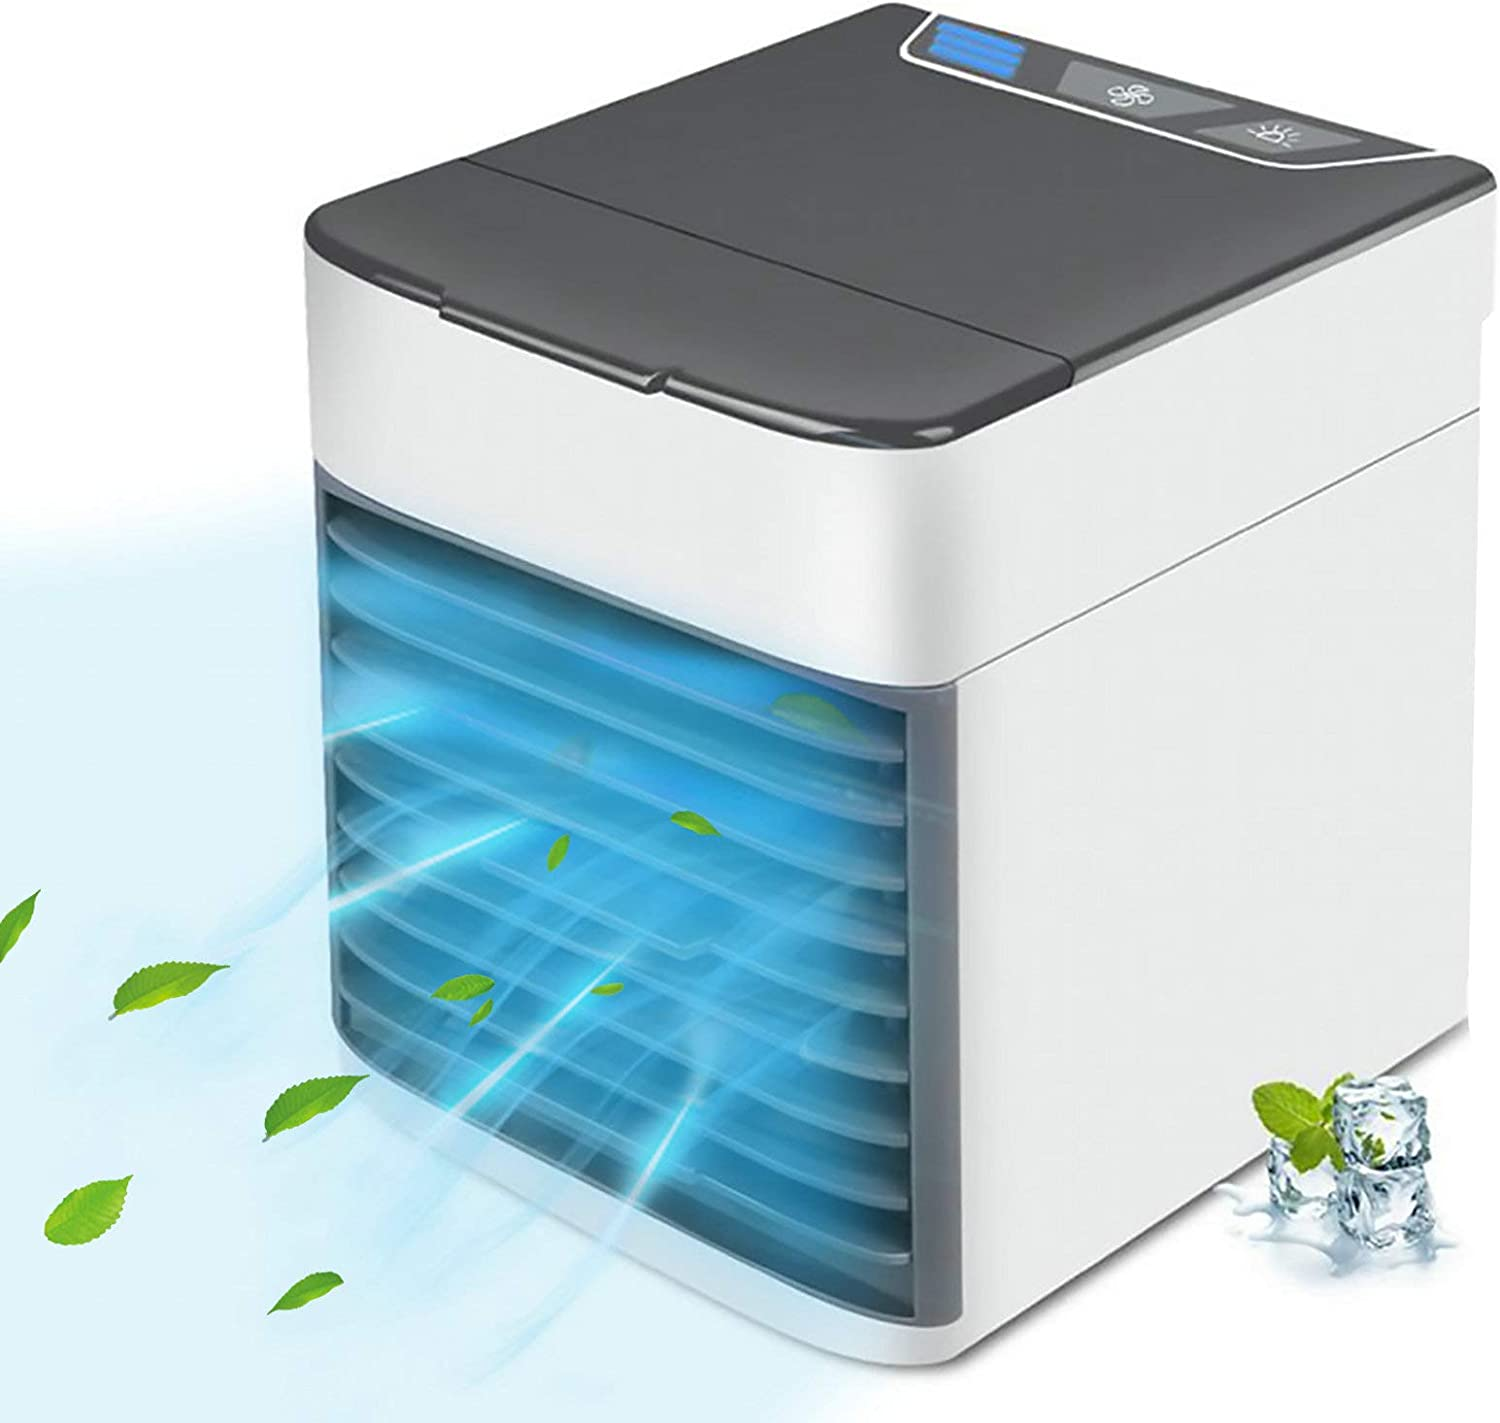 Personal Air Conditioner, Quiet USB Air Cooler with 3-Speed, Mini Air Conditioner with LED Light, Portable Air Conditioner for Small Room/Office/Dorm/Bedroom